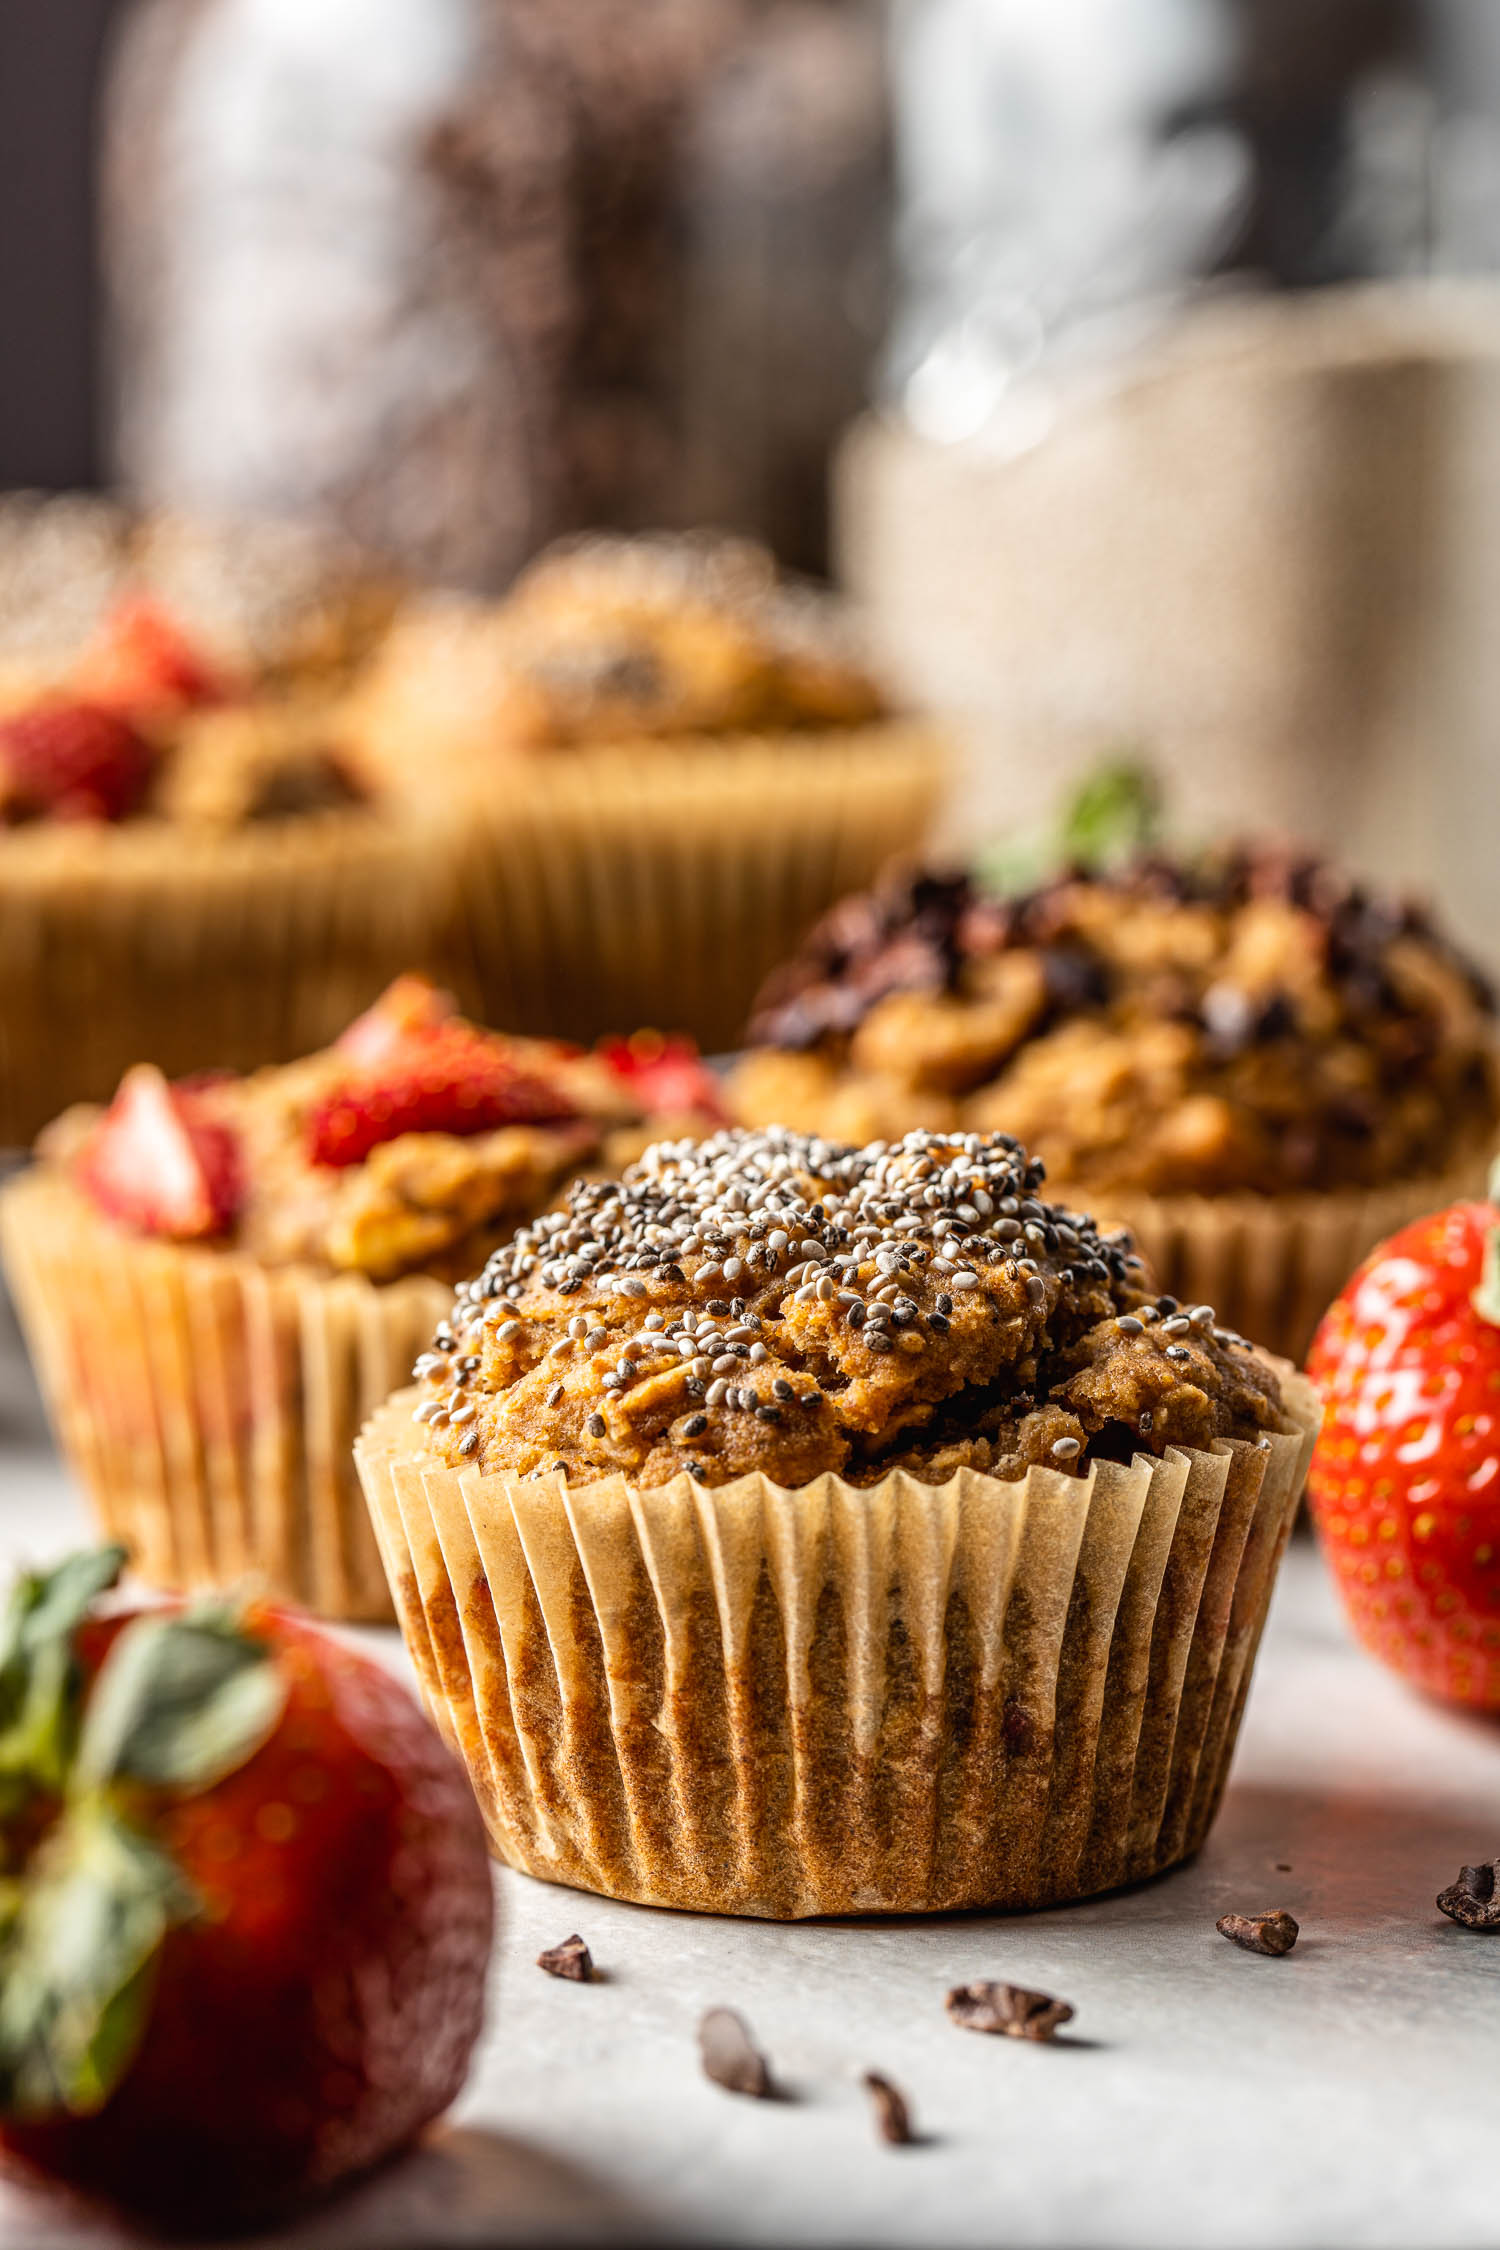 chia seed topped muffin sits in the center of strawberry and cocoa topped muffins